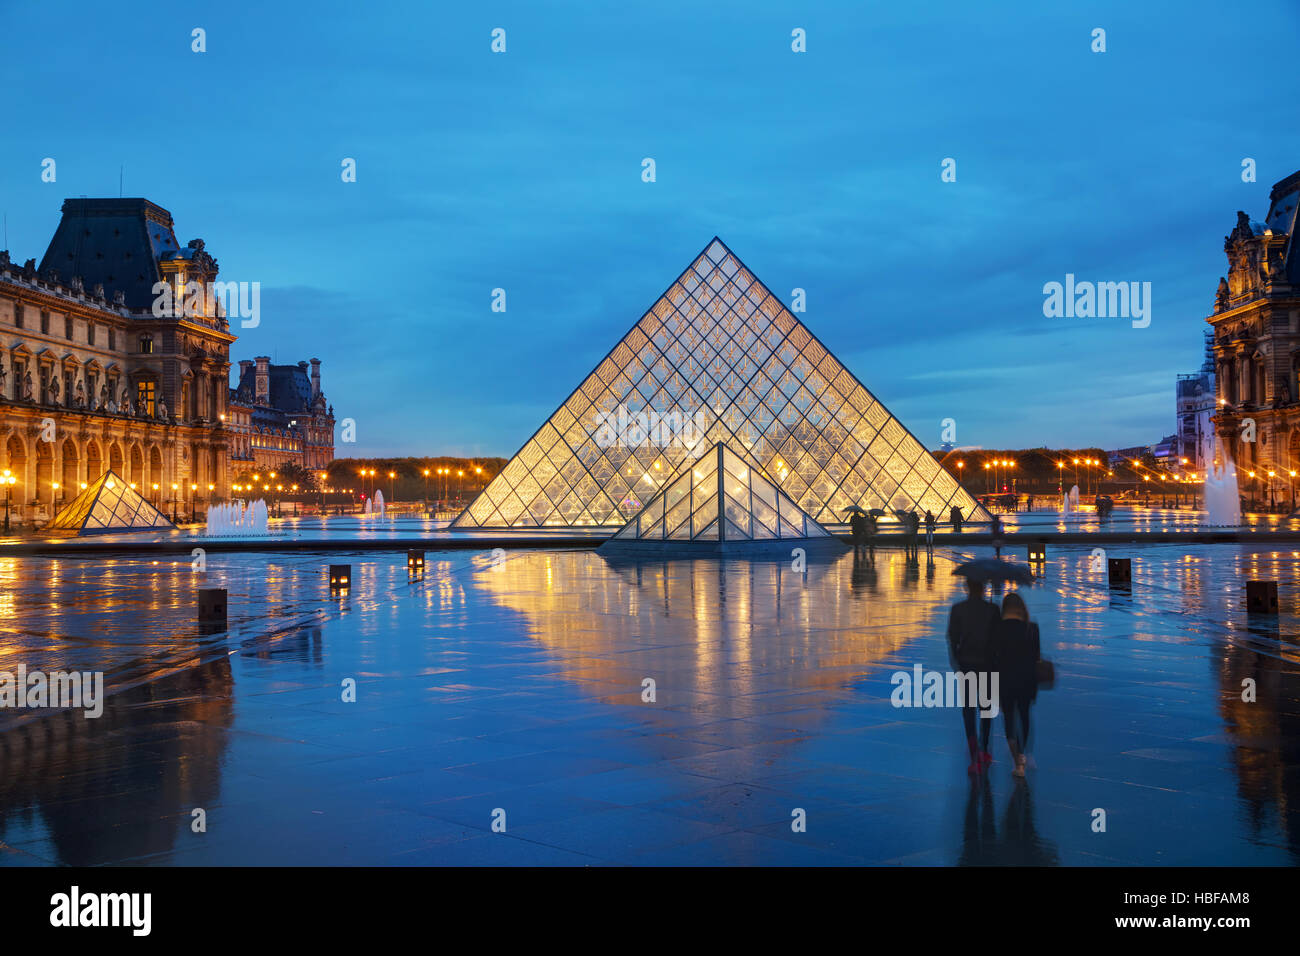 PARIS - NOVEMBER 4: The Louvre Pyramid on November 4, 2016 in Paris, France. It serves as the main entrance to the - Stock Image